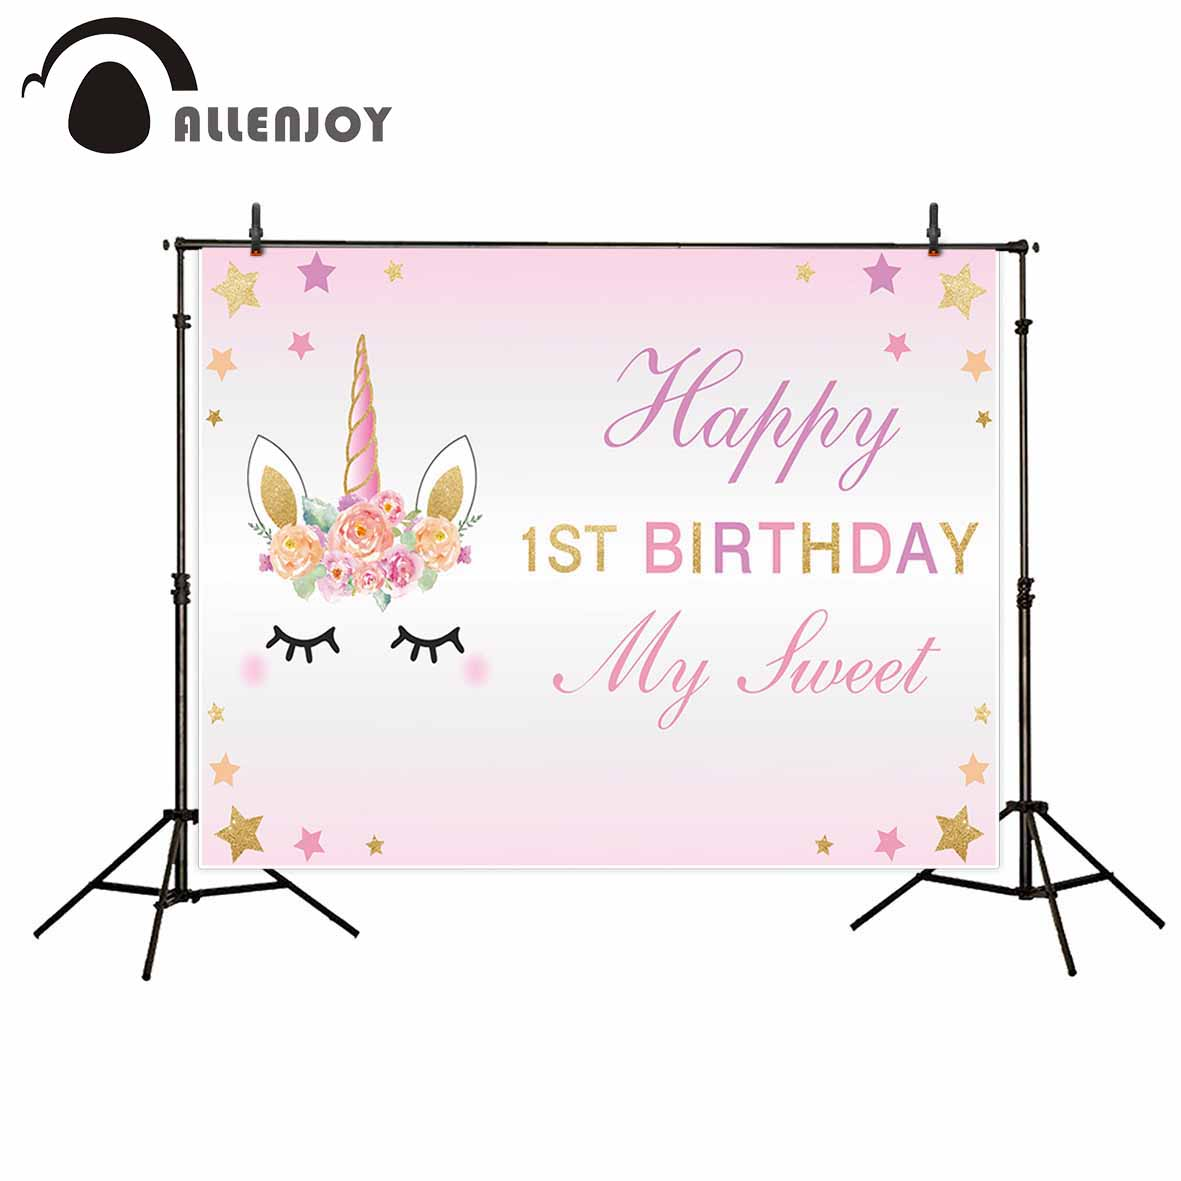 Allenjoy photography background 1 year old girl birthday unicorn custom professional festival backdrop photographic product